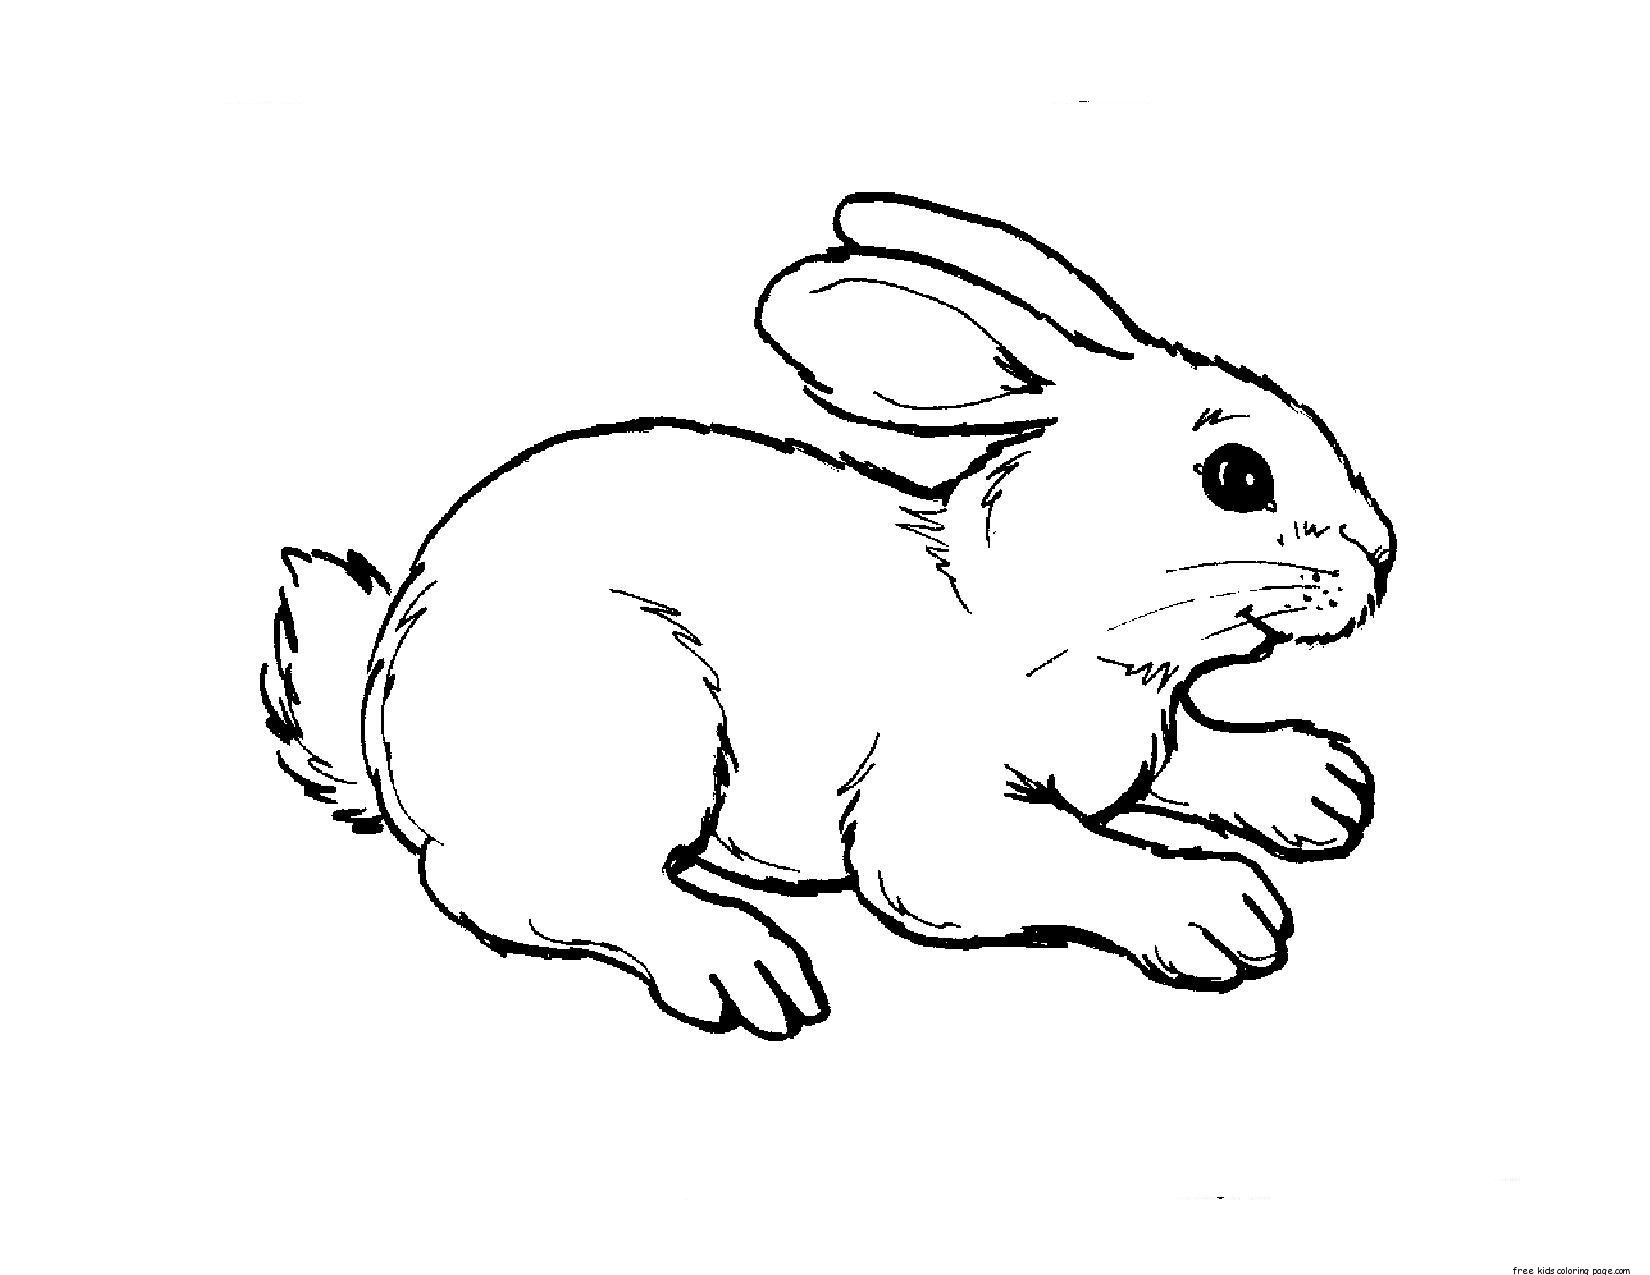 rabbit on table coloring page from rabbits category select from 25105 printable crafts of cartoons nature animals bible and many more